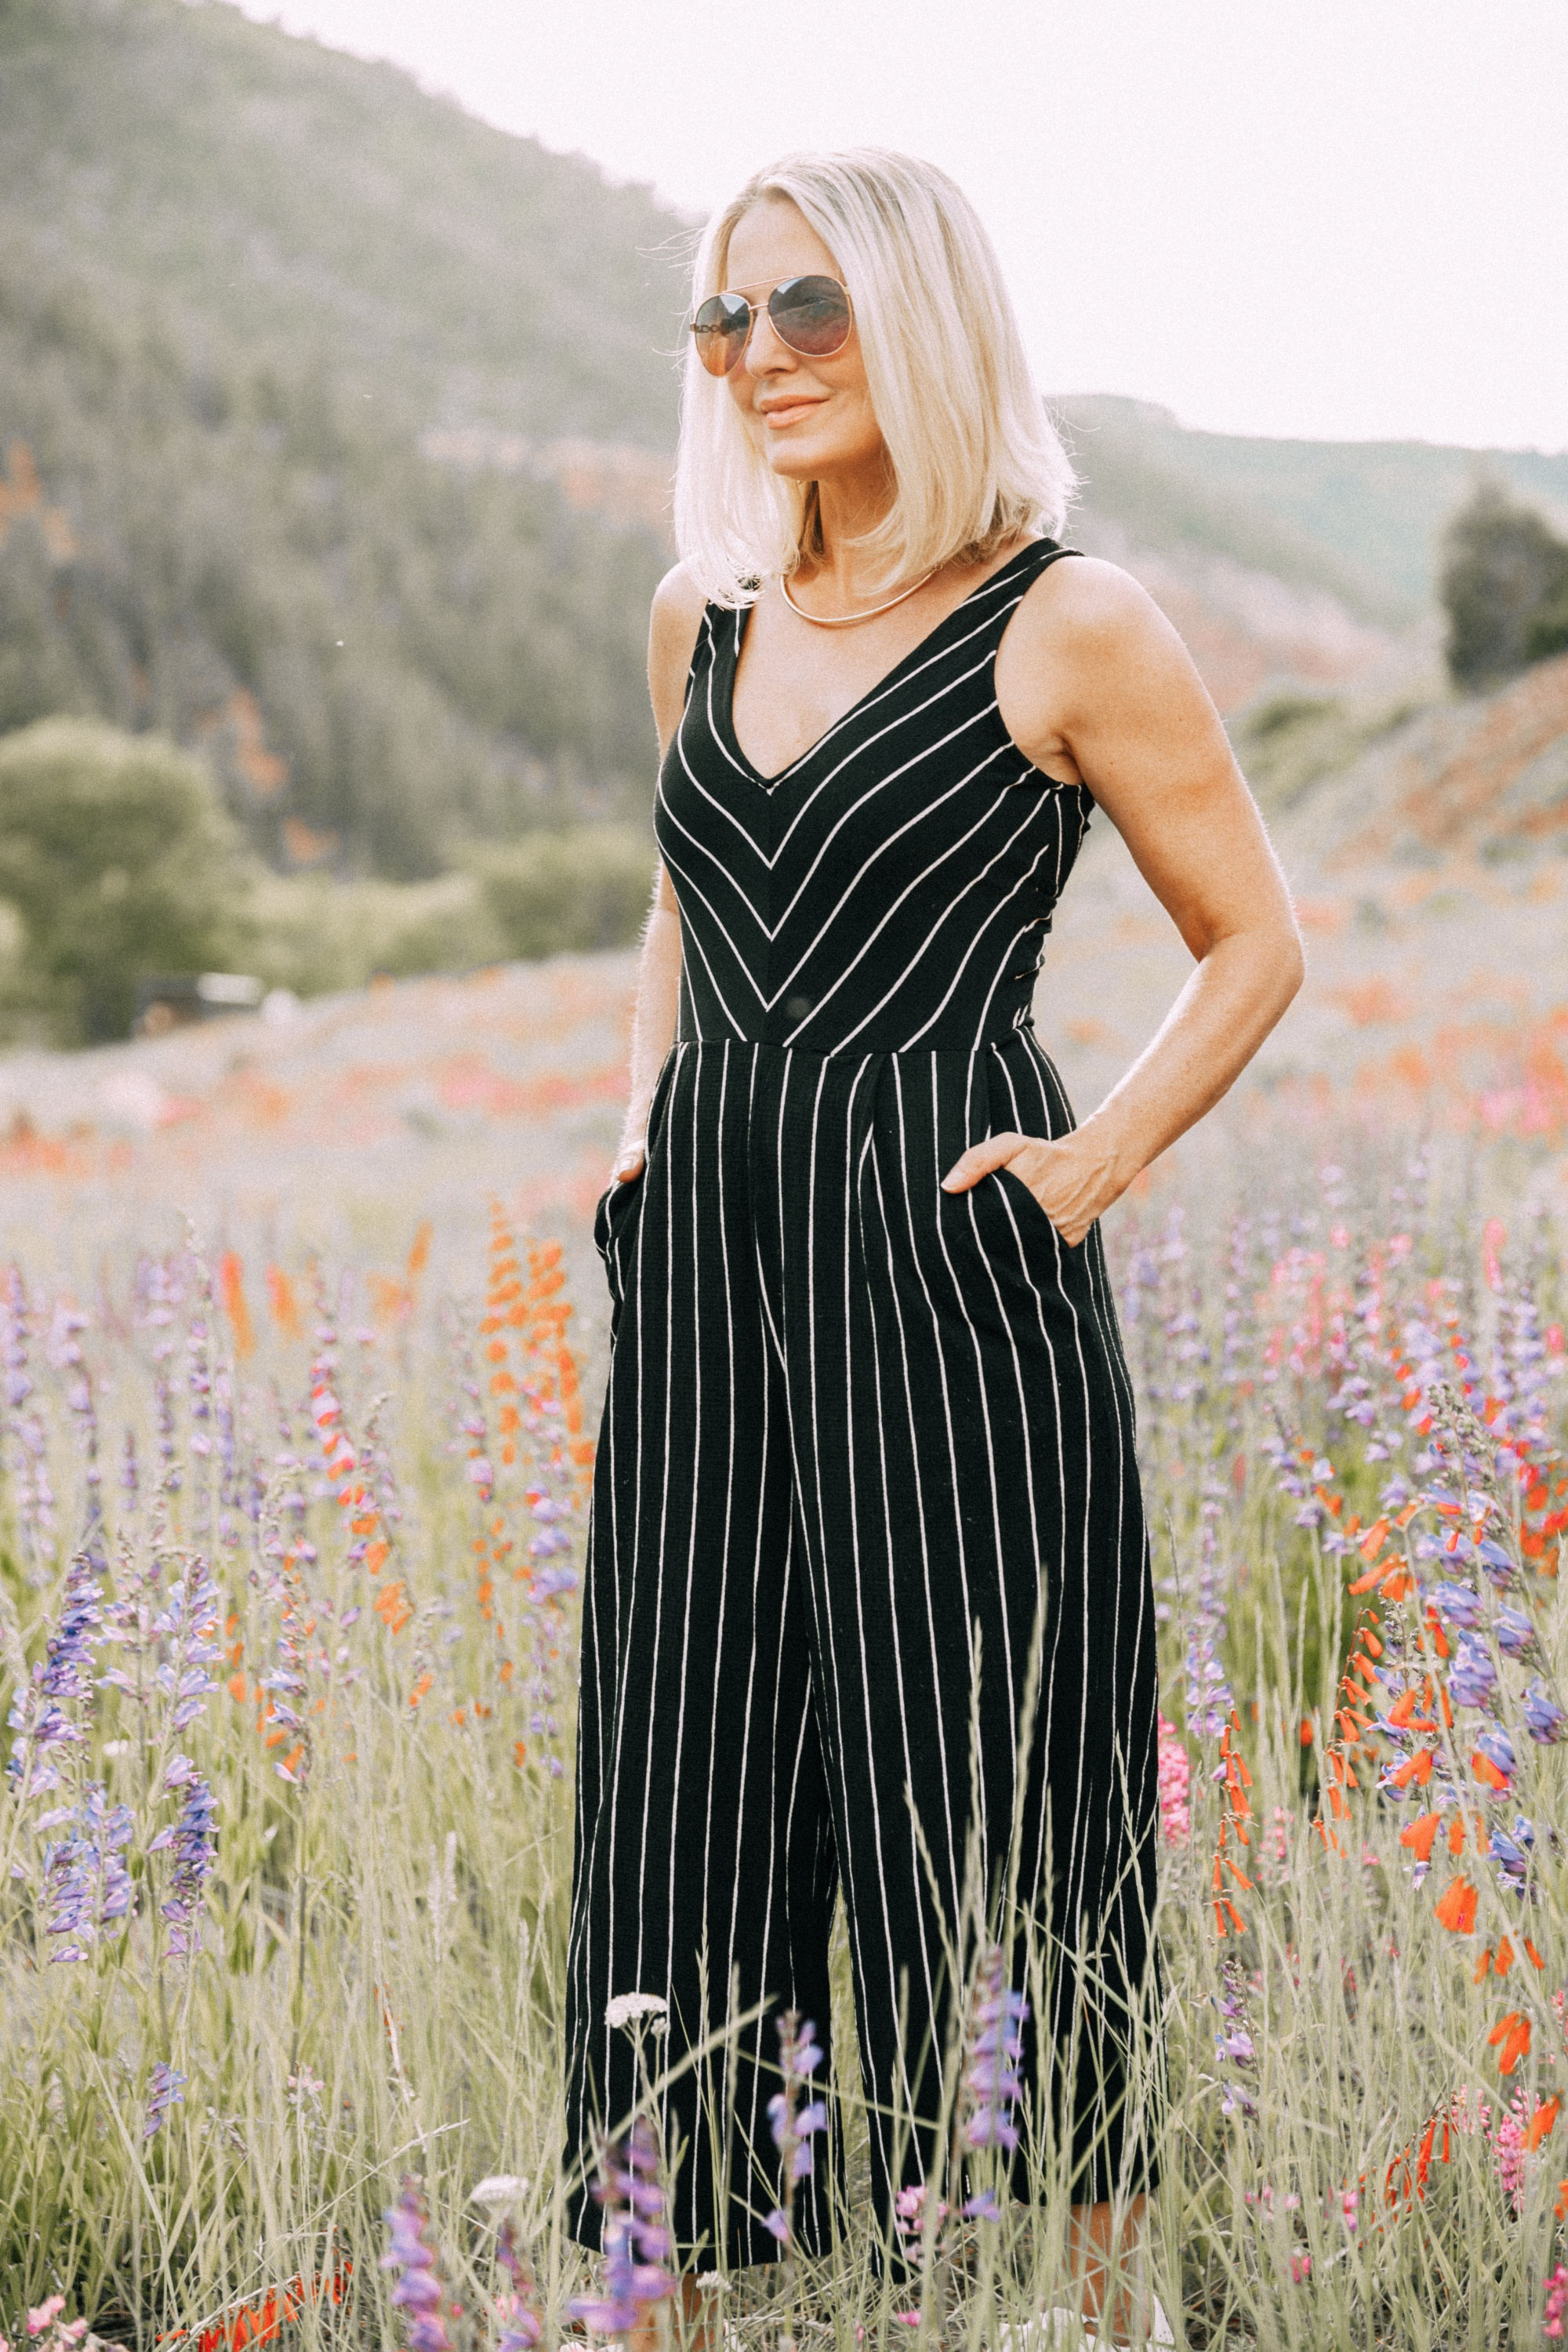 Ways To Wear Stripes, Fashion blogger Erin Busbee wearing a striped black and white jumpsuit and white perforated sneakers from JCPenney in the wildflowers in Telluride, CO